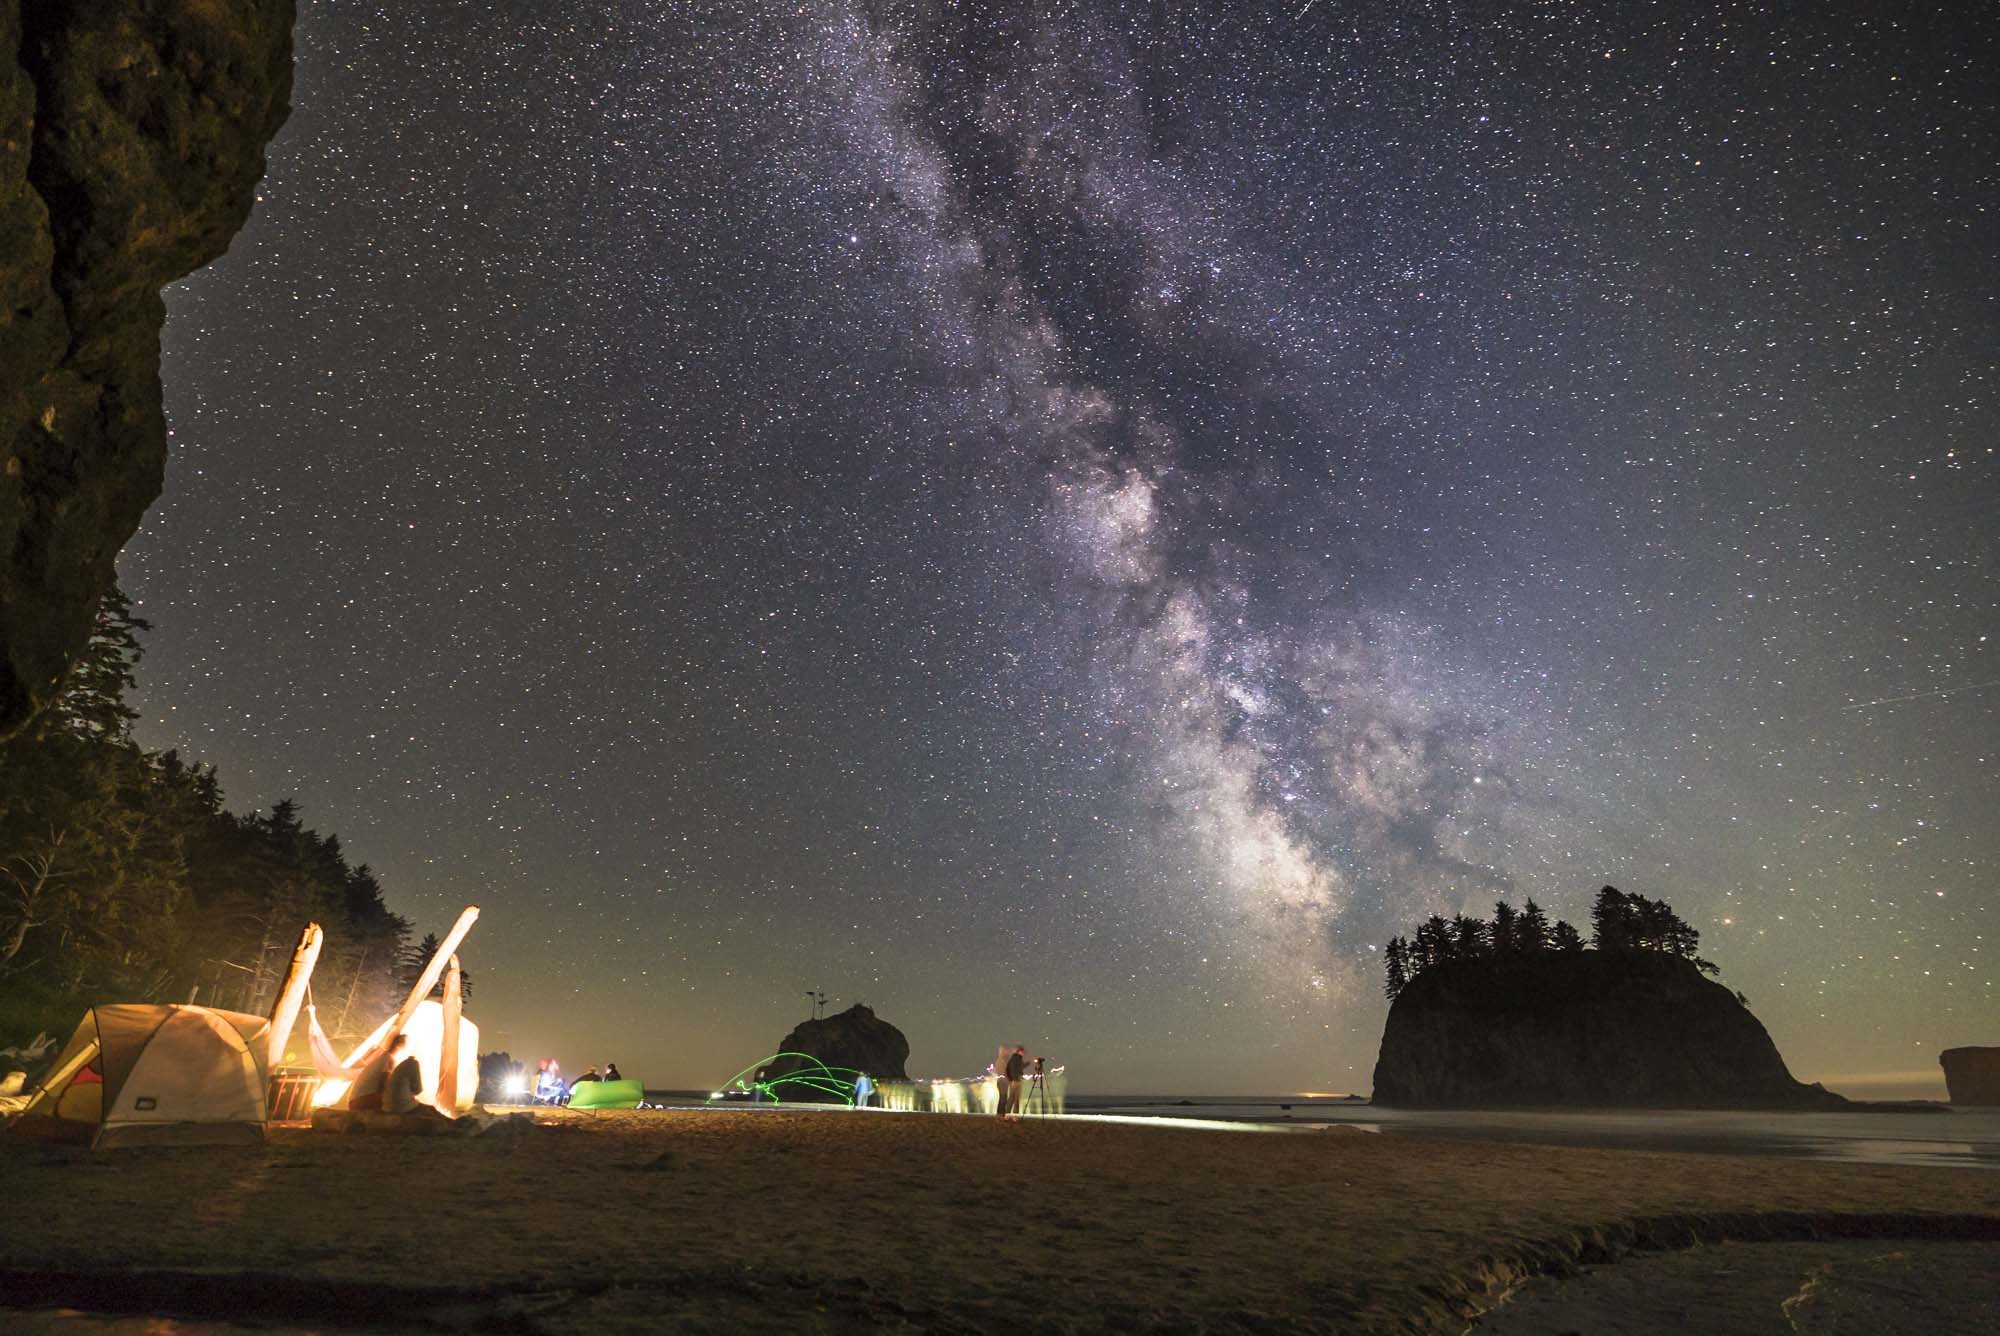 Camping and stars at Second Beach in Olympic National Park.